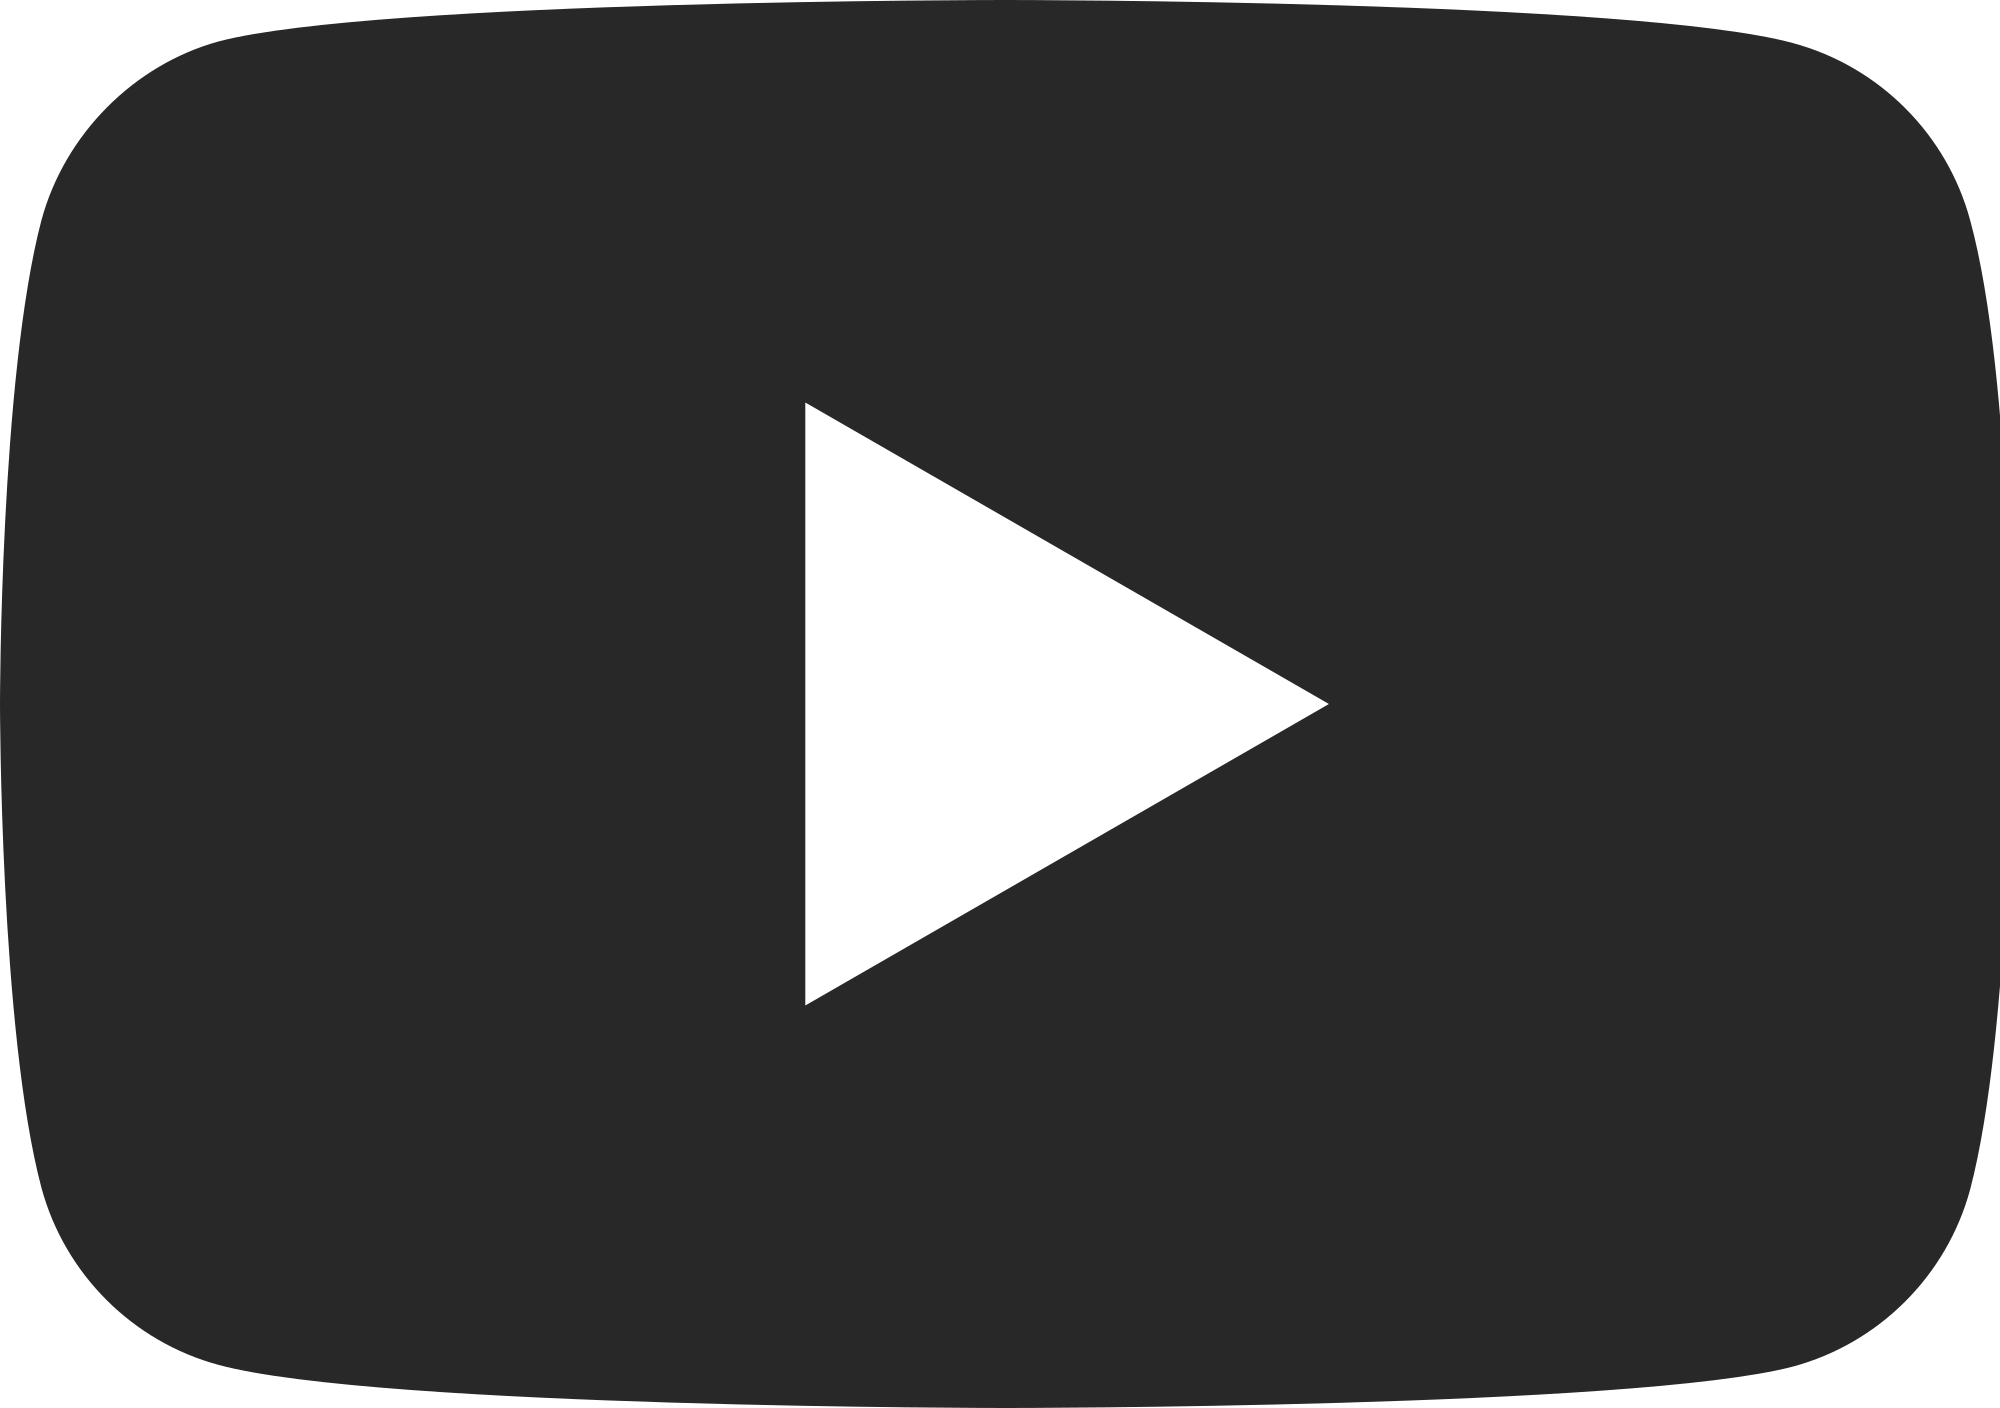 Youtube Free Download On Mbtskoudsalg Png Youtube Logo - Youtube Black Logo Png (2000x1408), Png Download